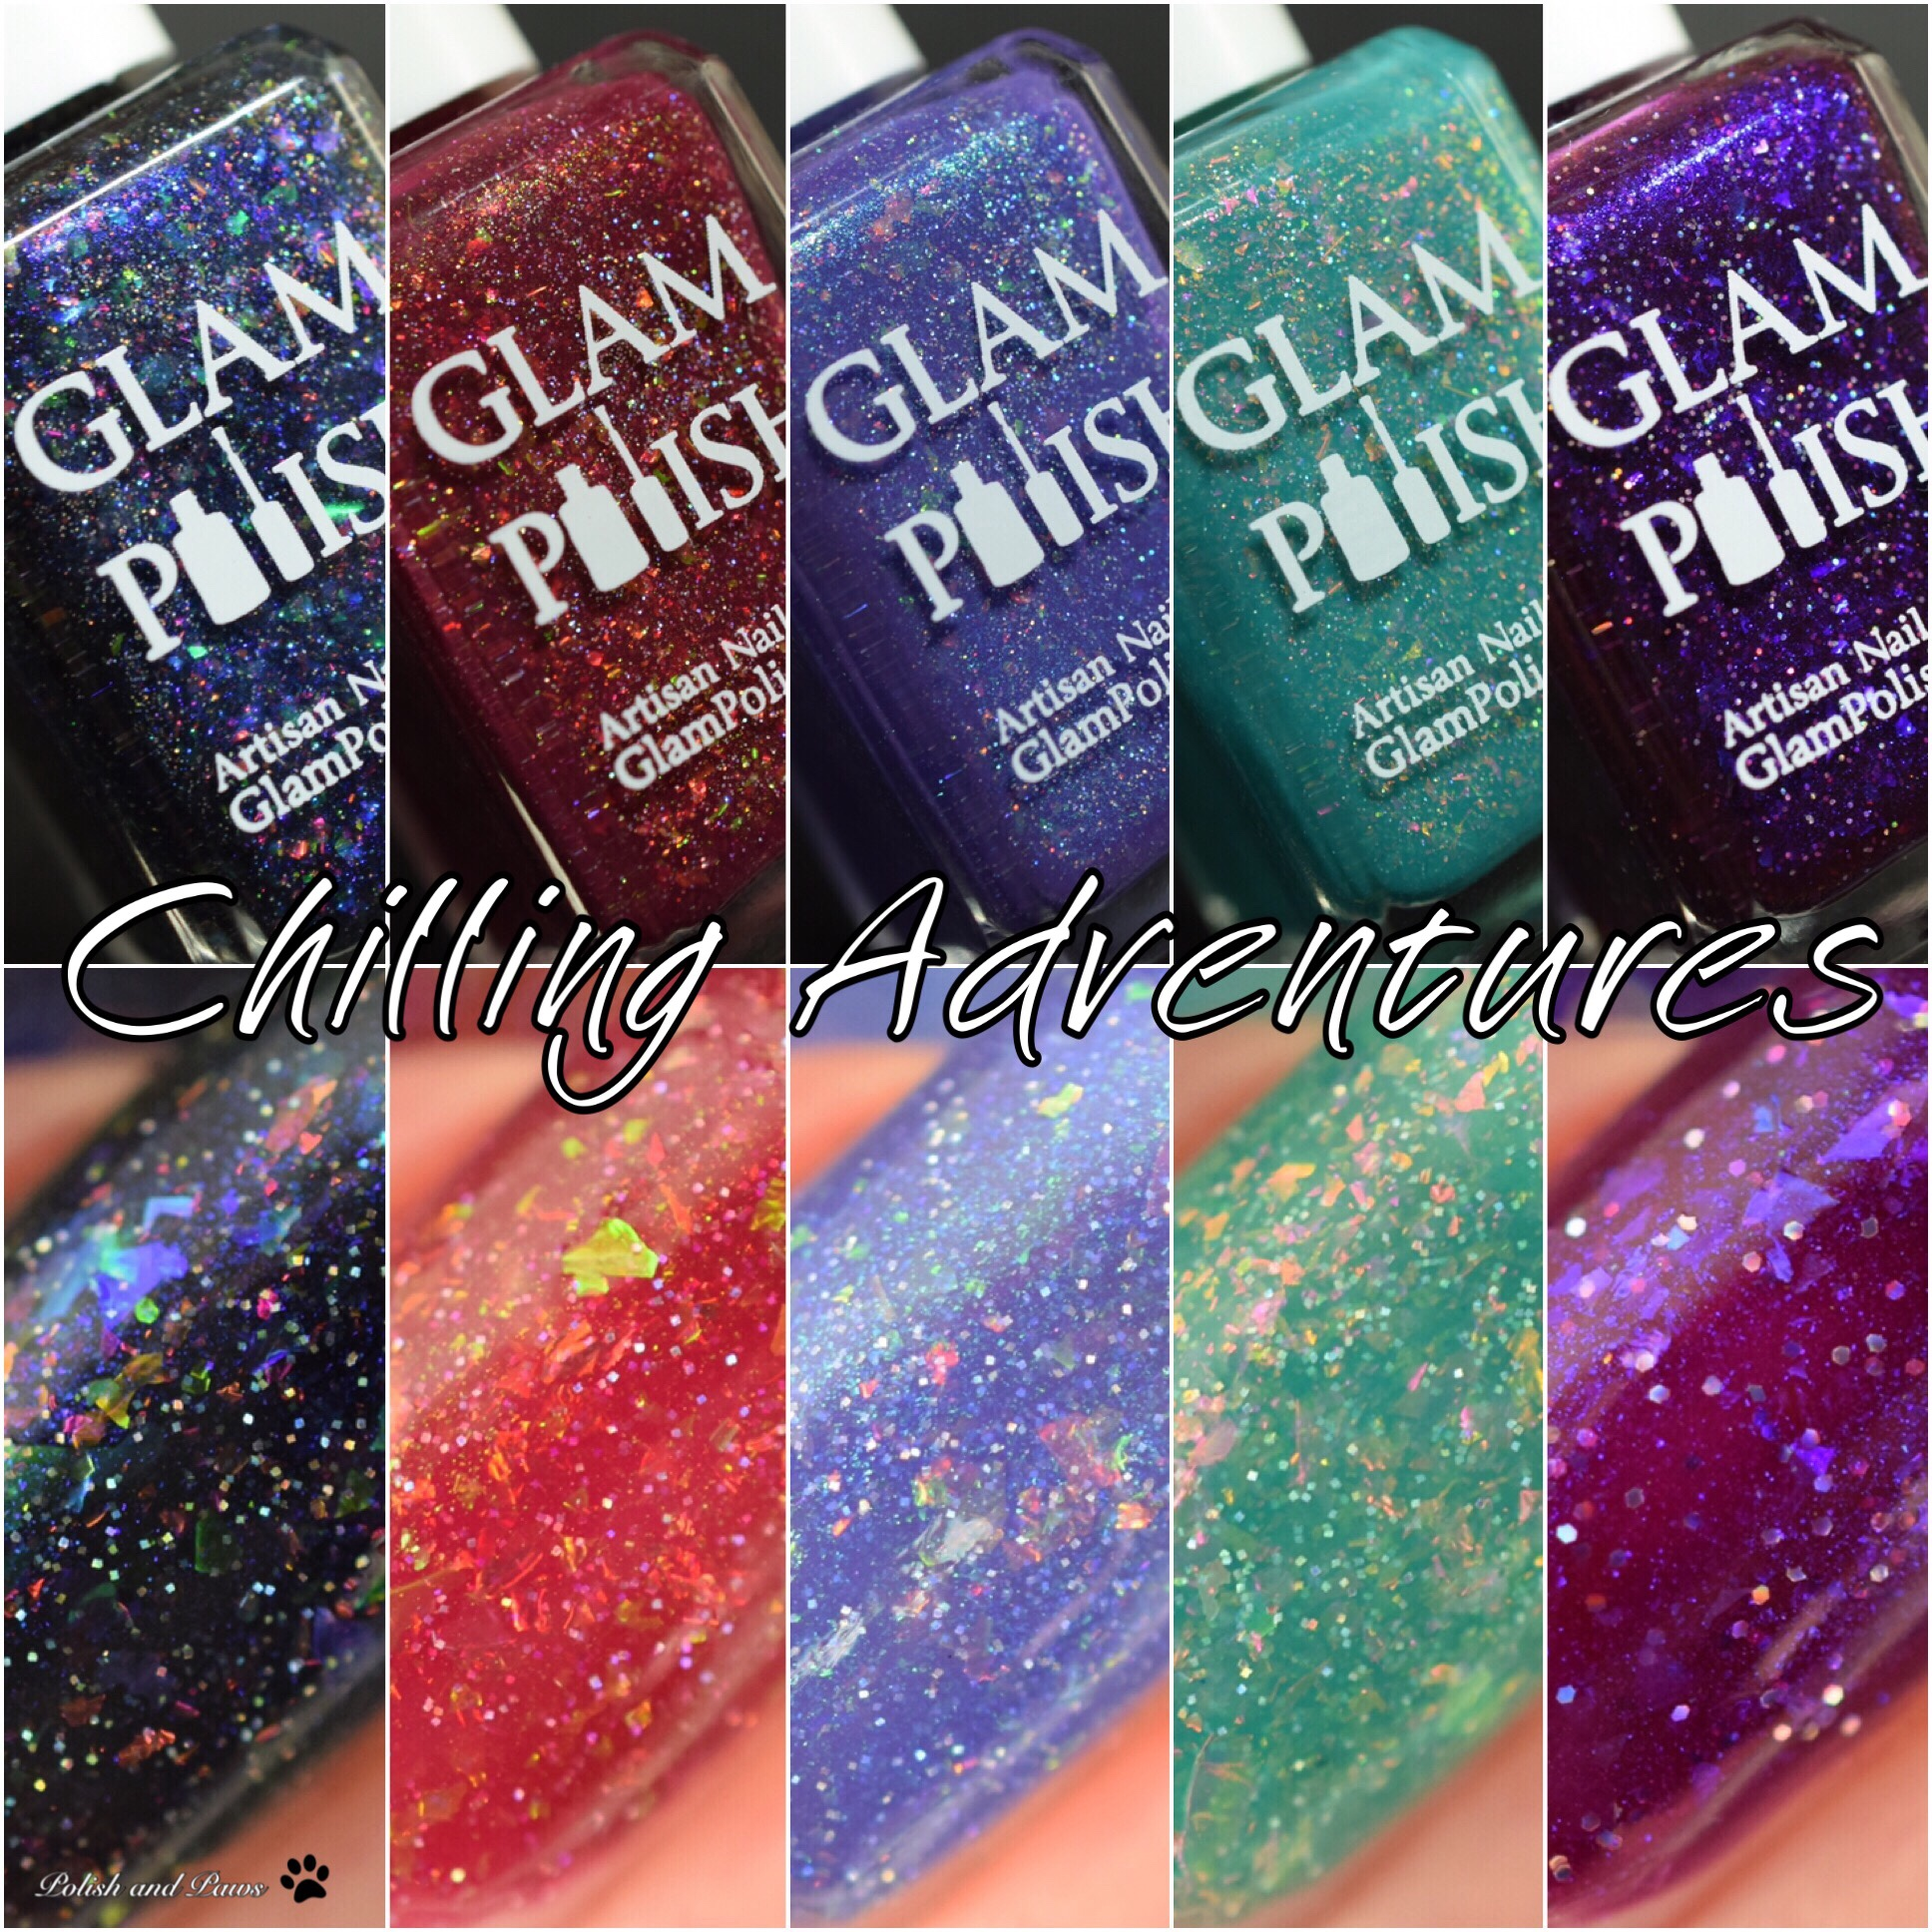 Glam Polish Chilling Adventures Collection